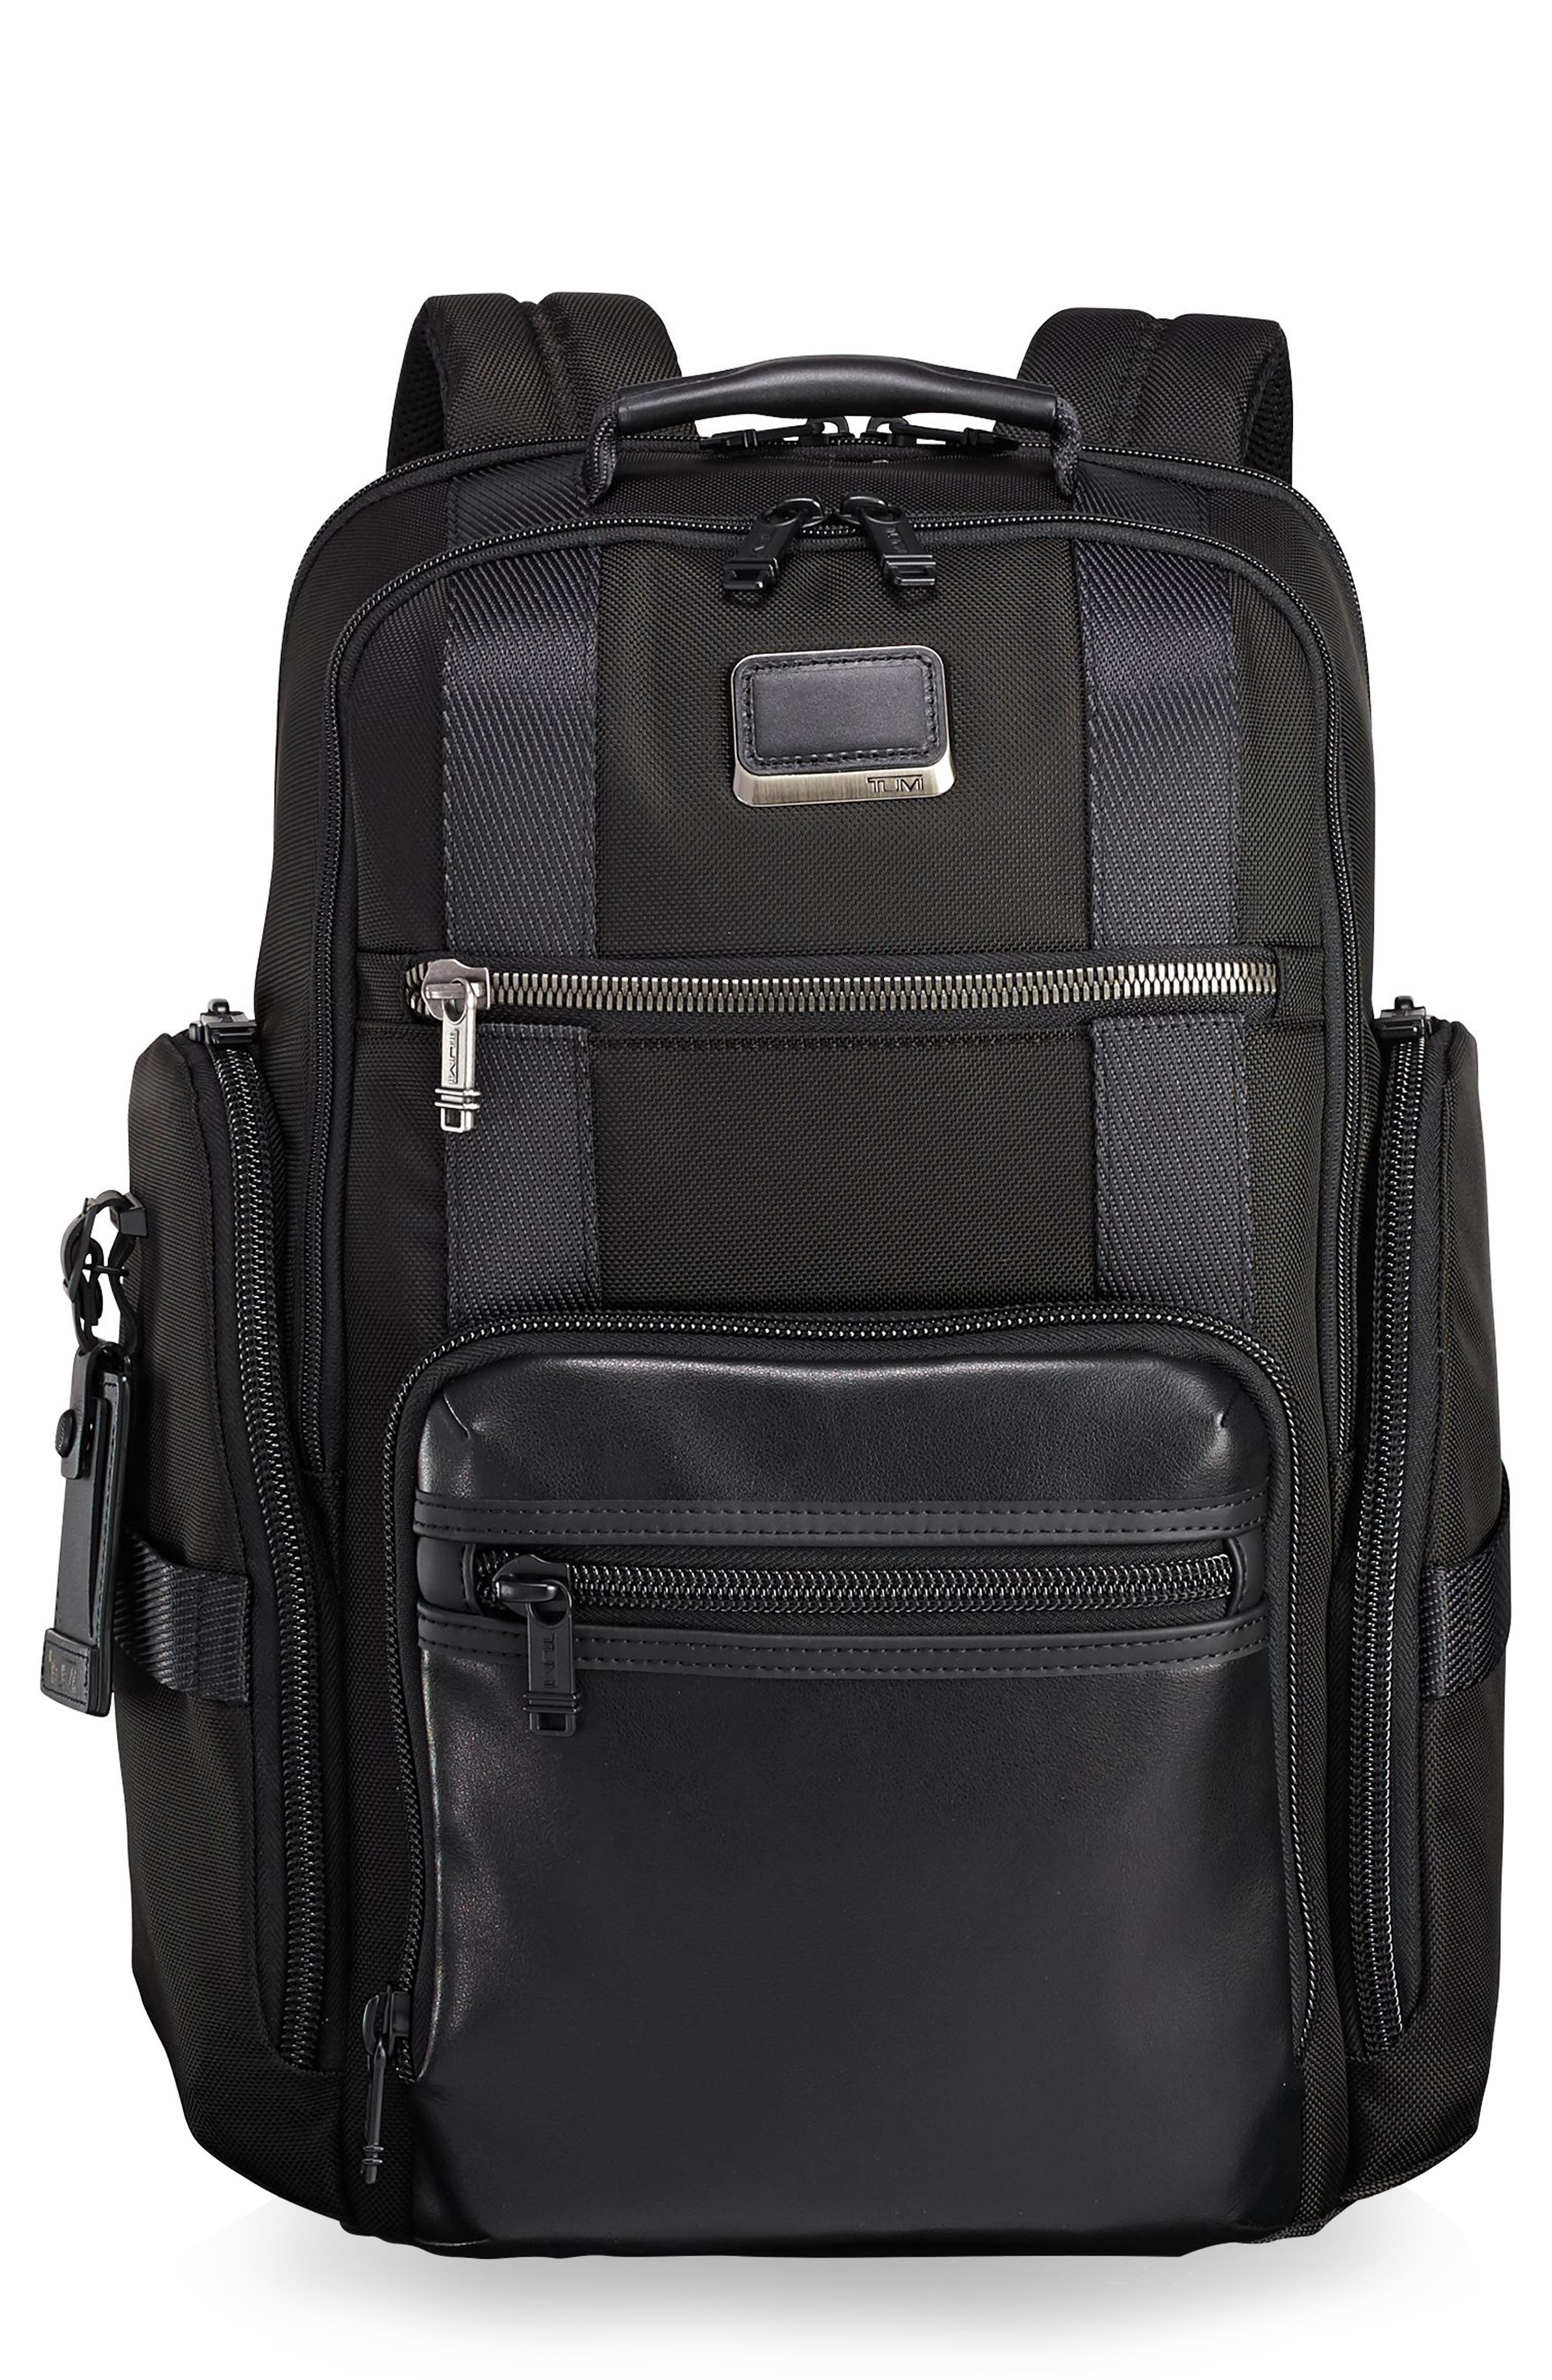 Alternate Image 1 Selected - Tumi Alpha Bravo - Sheppard Deluxe Backpack